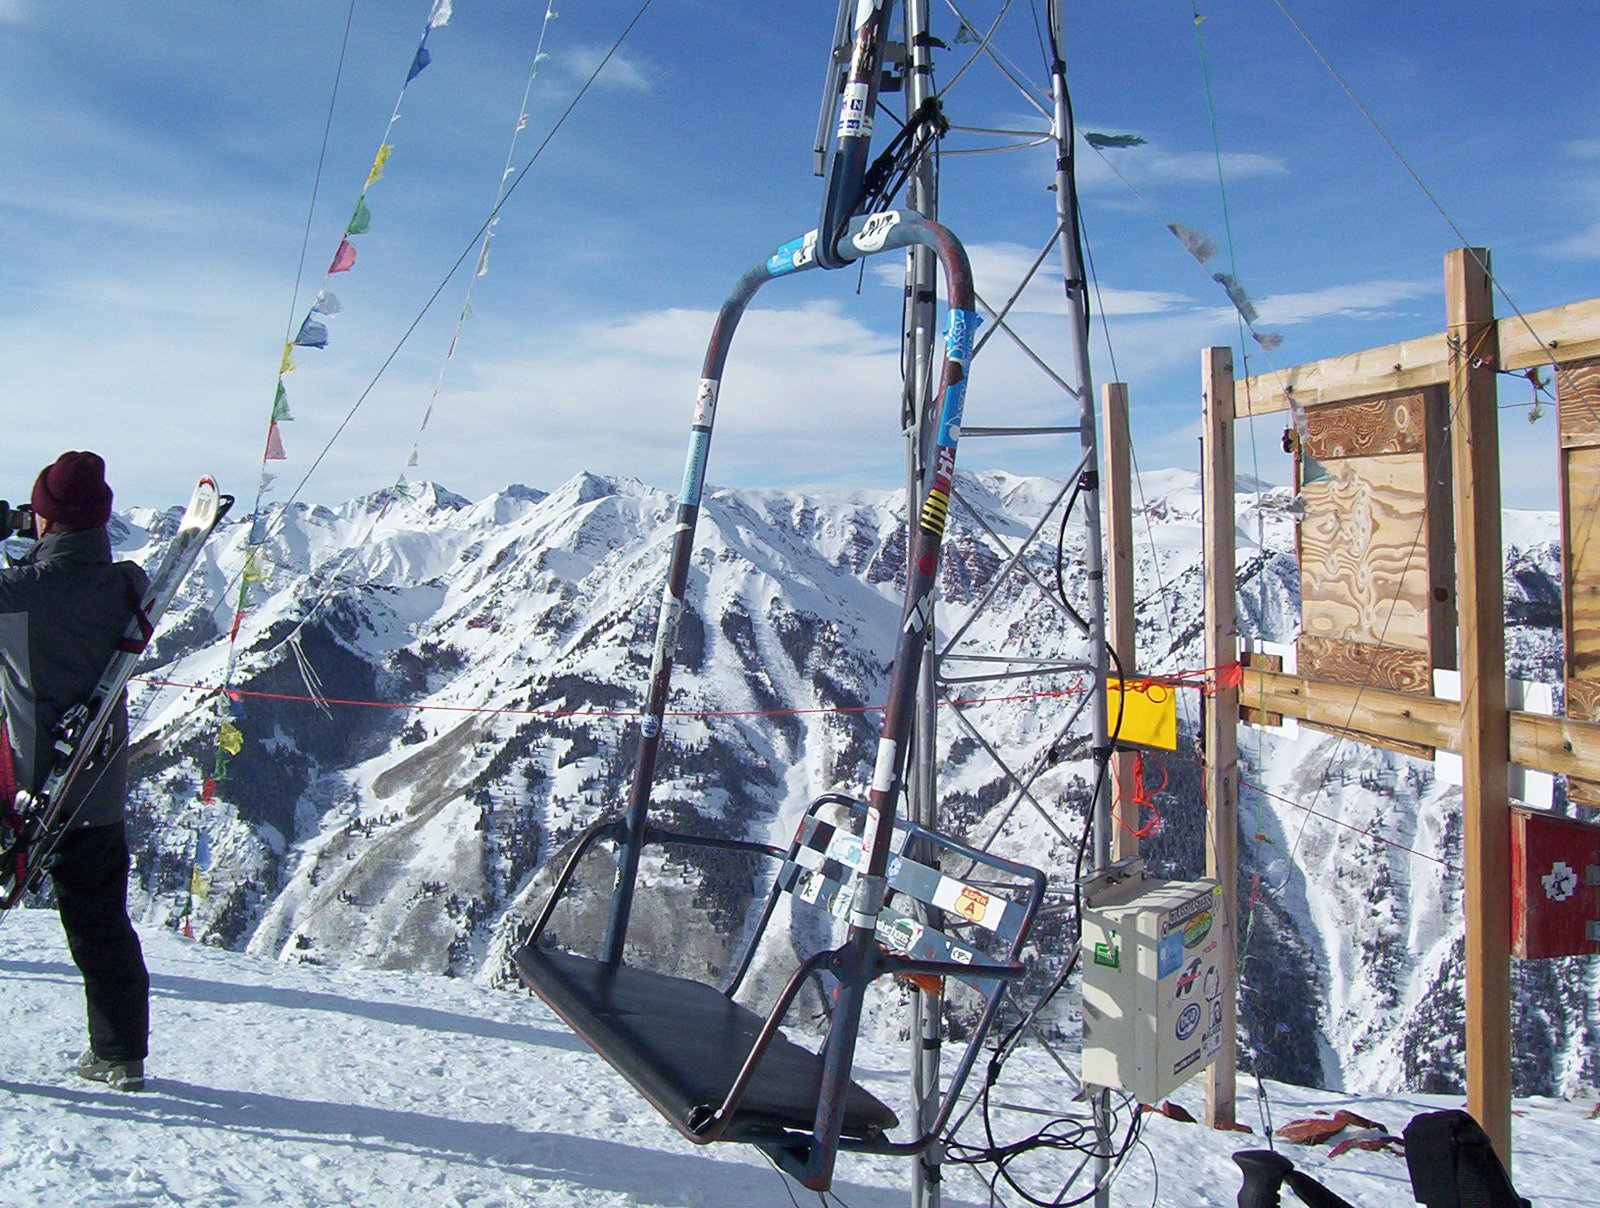 Chairlift at the top